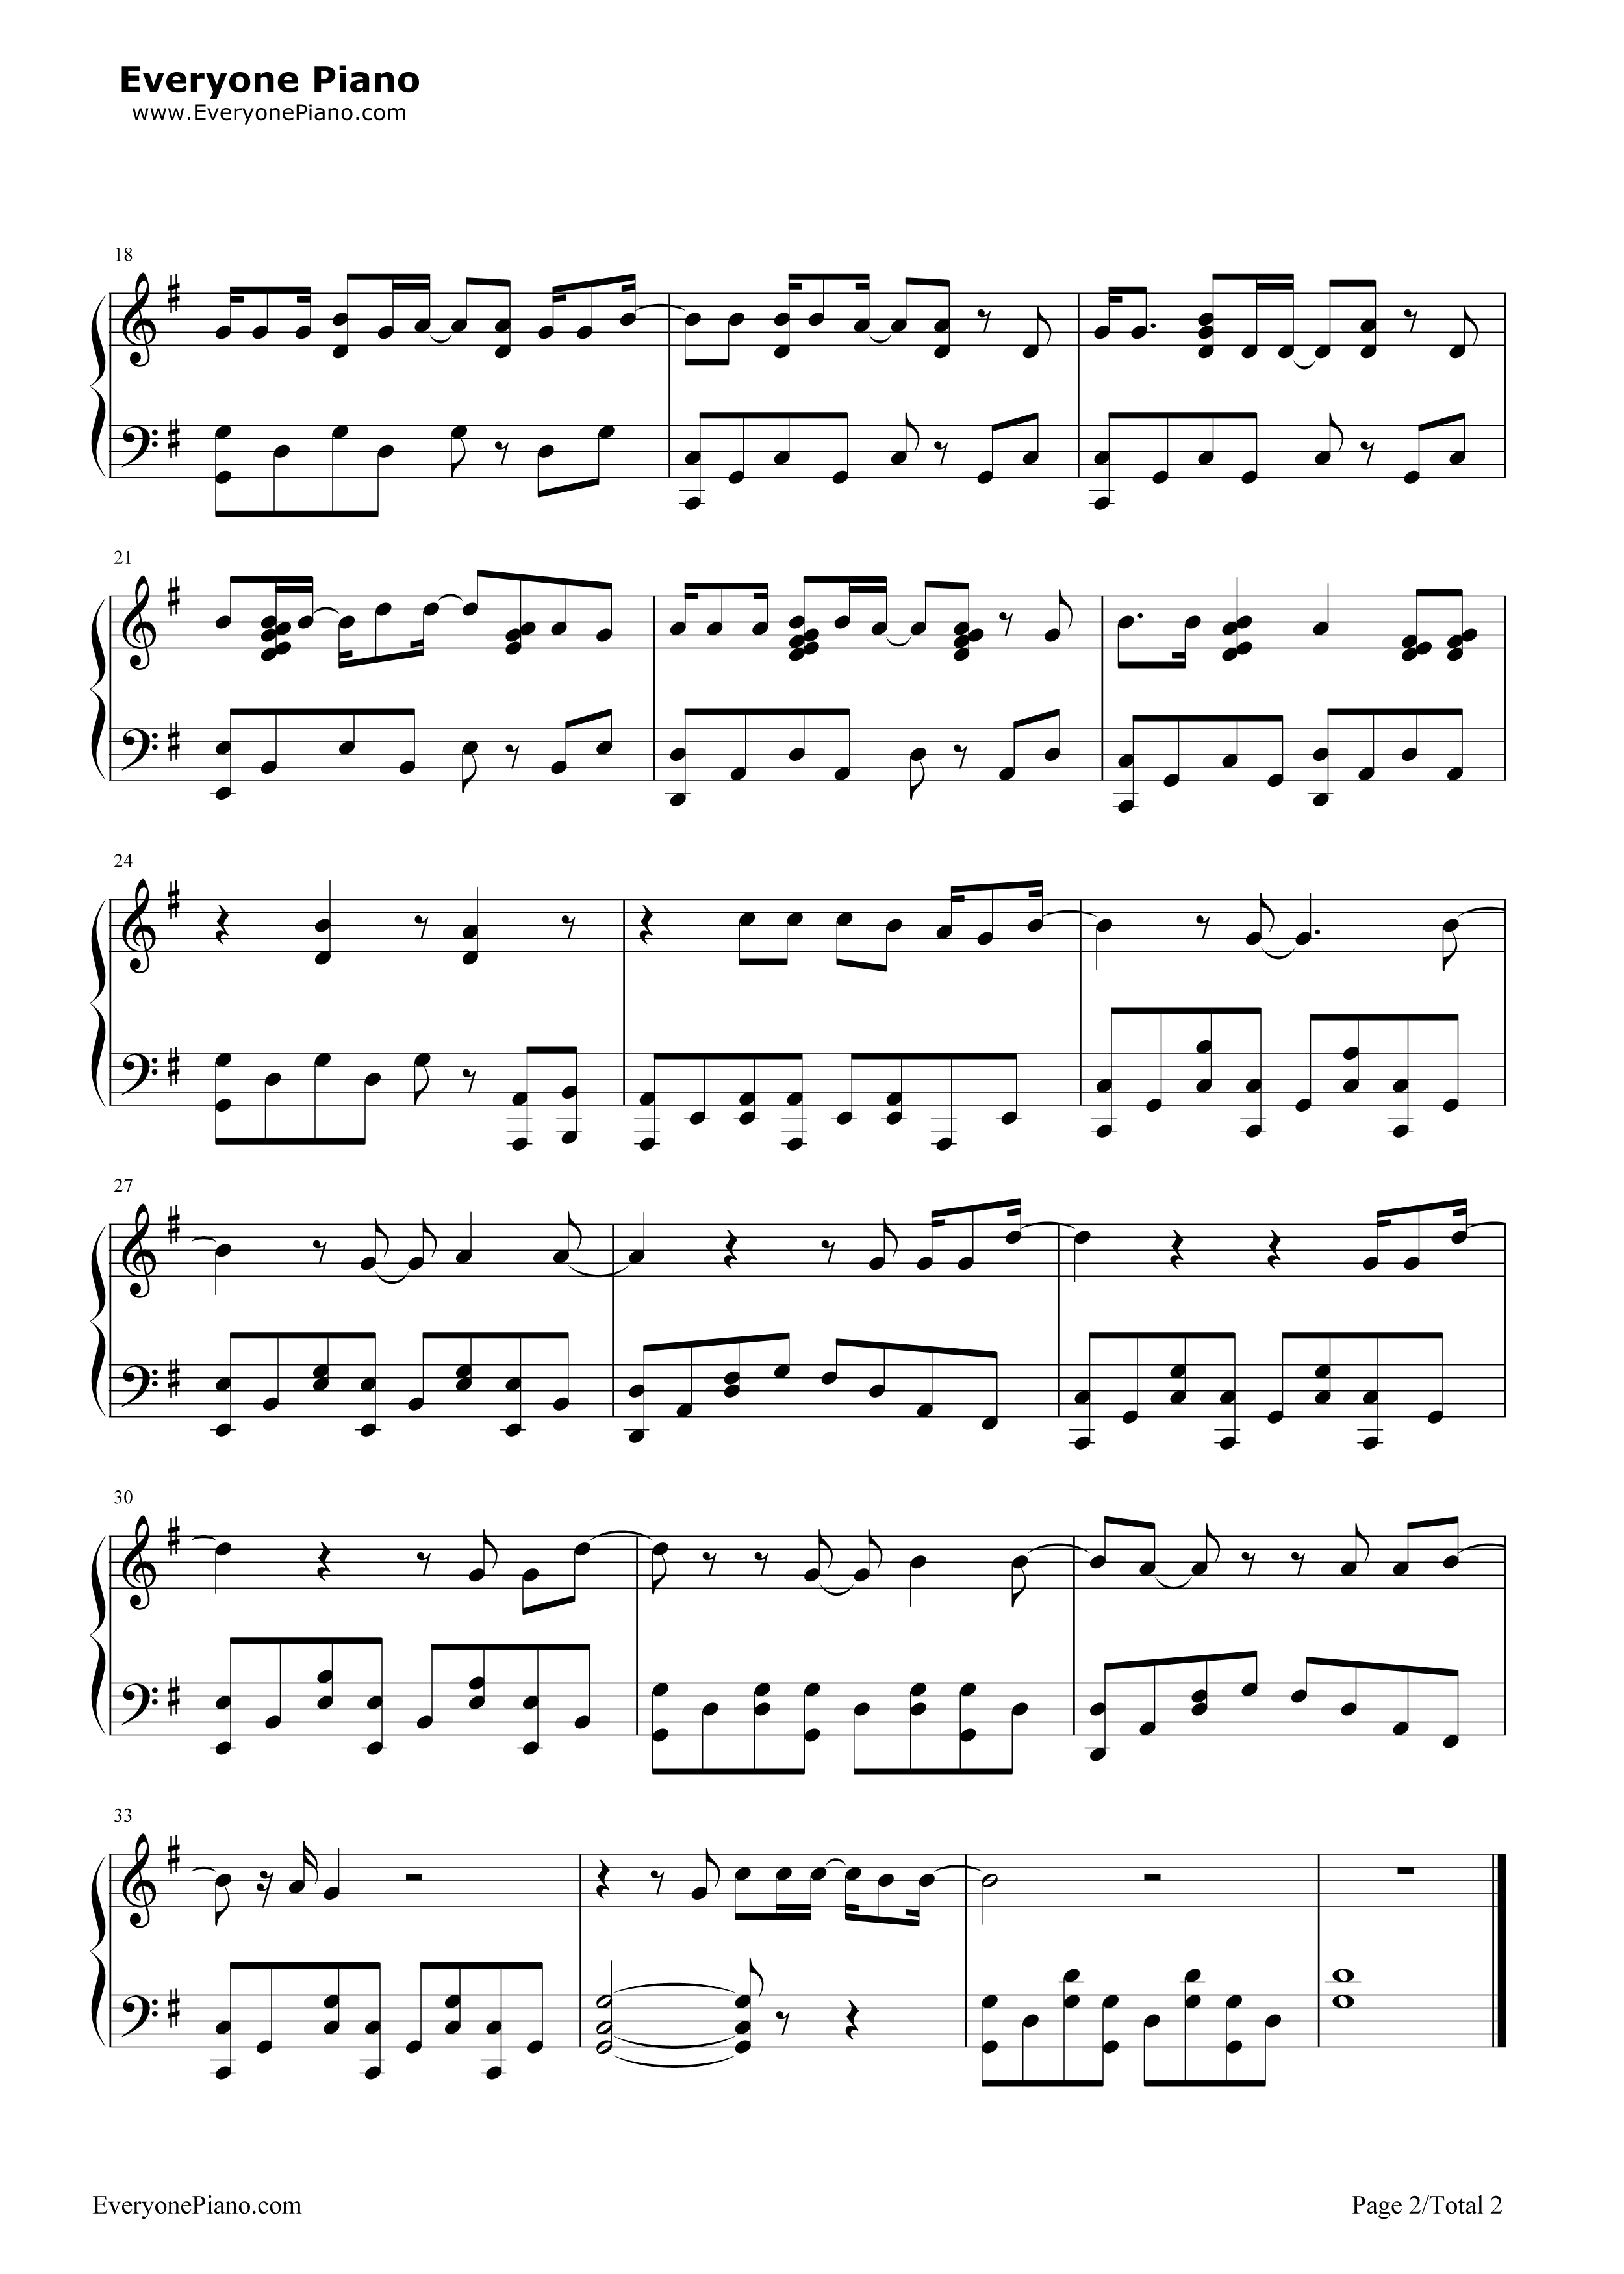 Little things one direction stave preview 2 free piano sheet listen now print sheet little things one direction stave preview 2 hexwebz Images